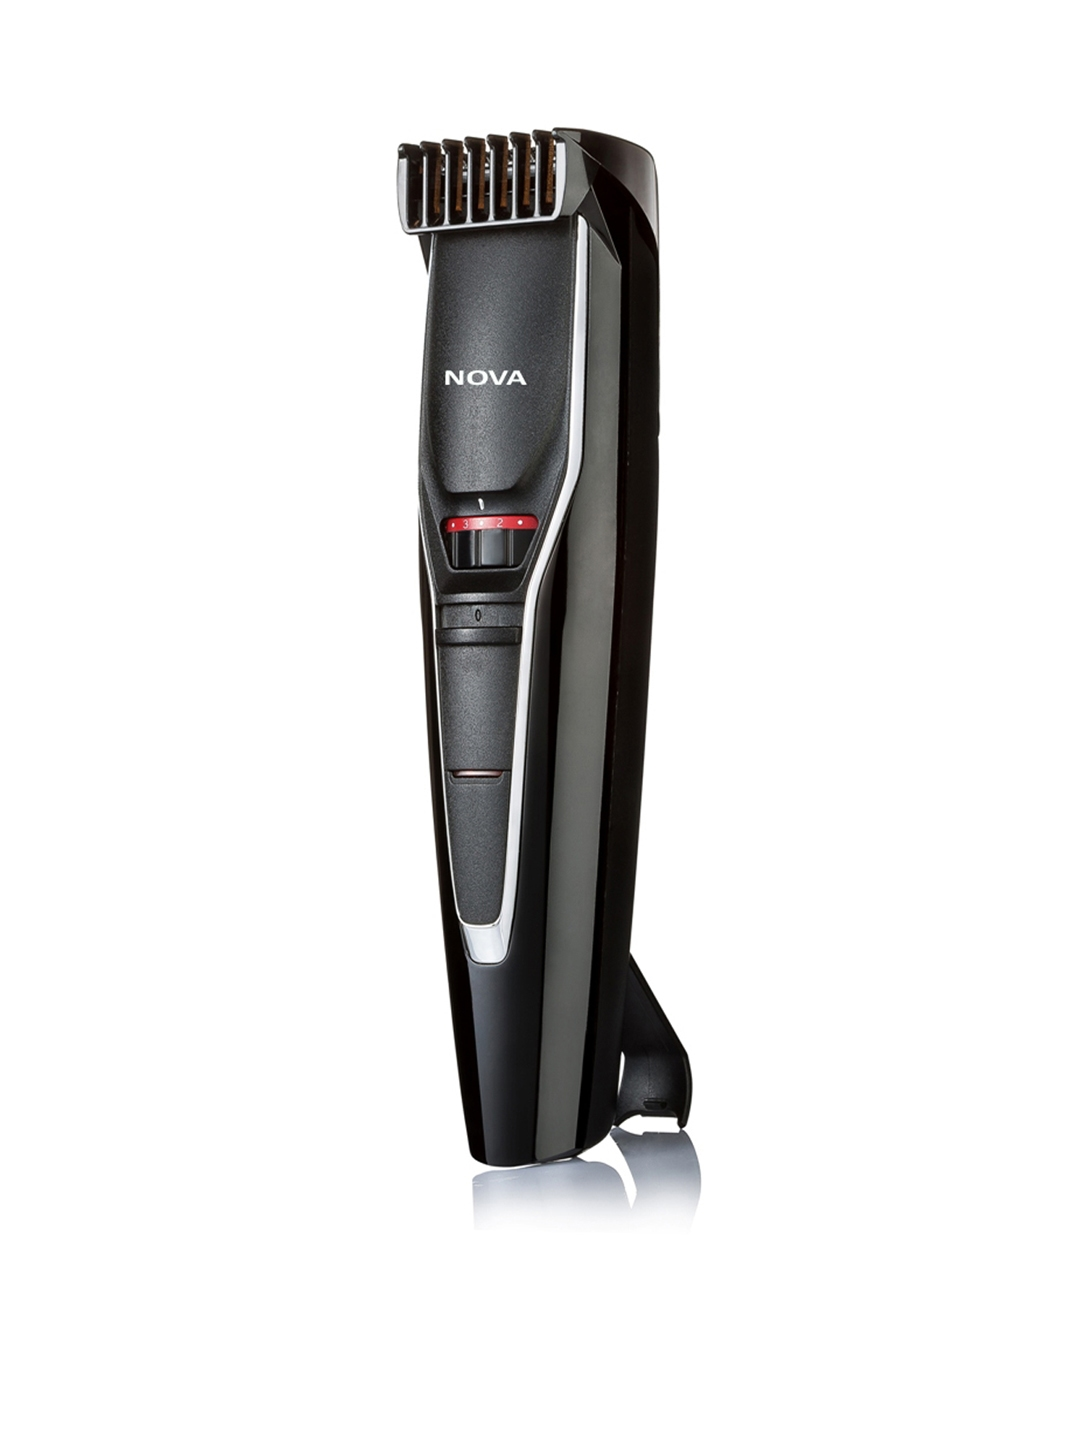 NOVA Men NHT 1091 Pro Cut Cordless Trimmer   Black